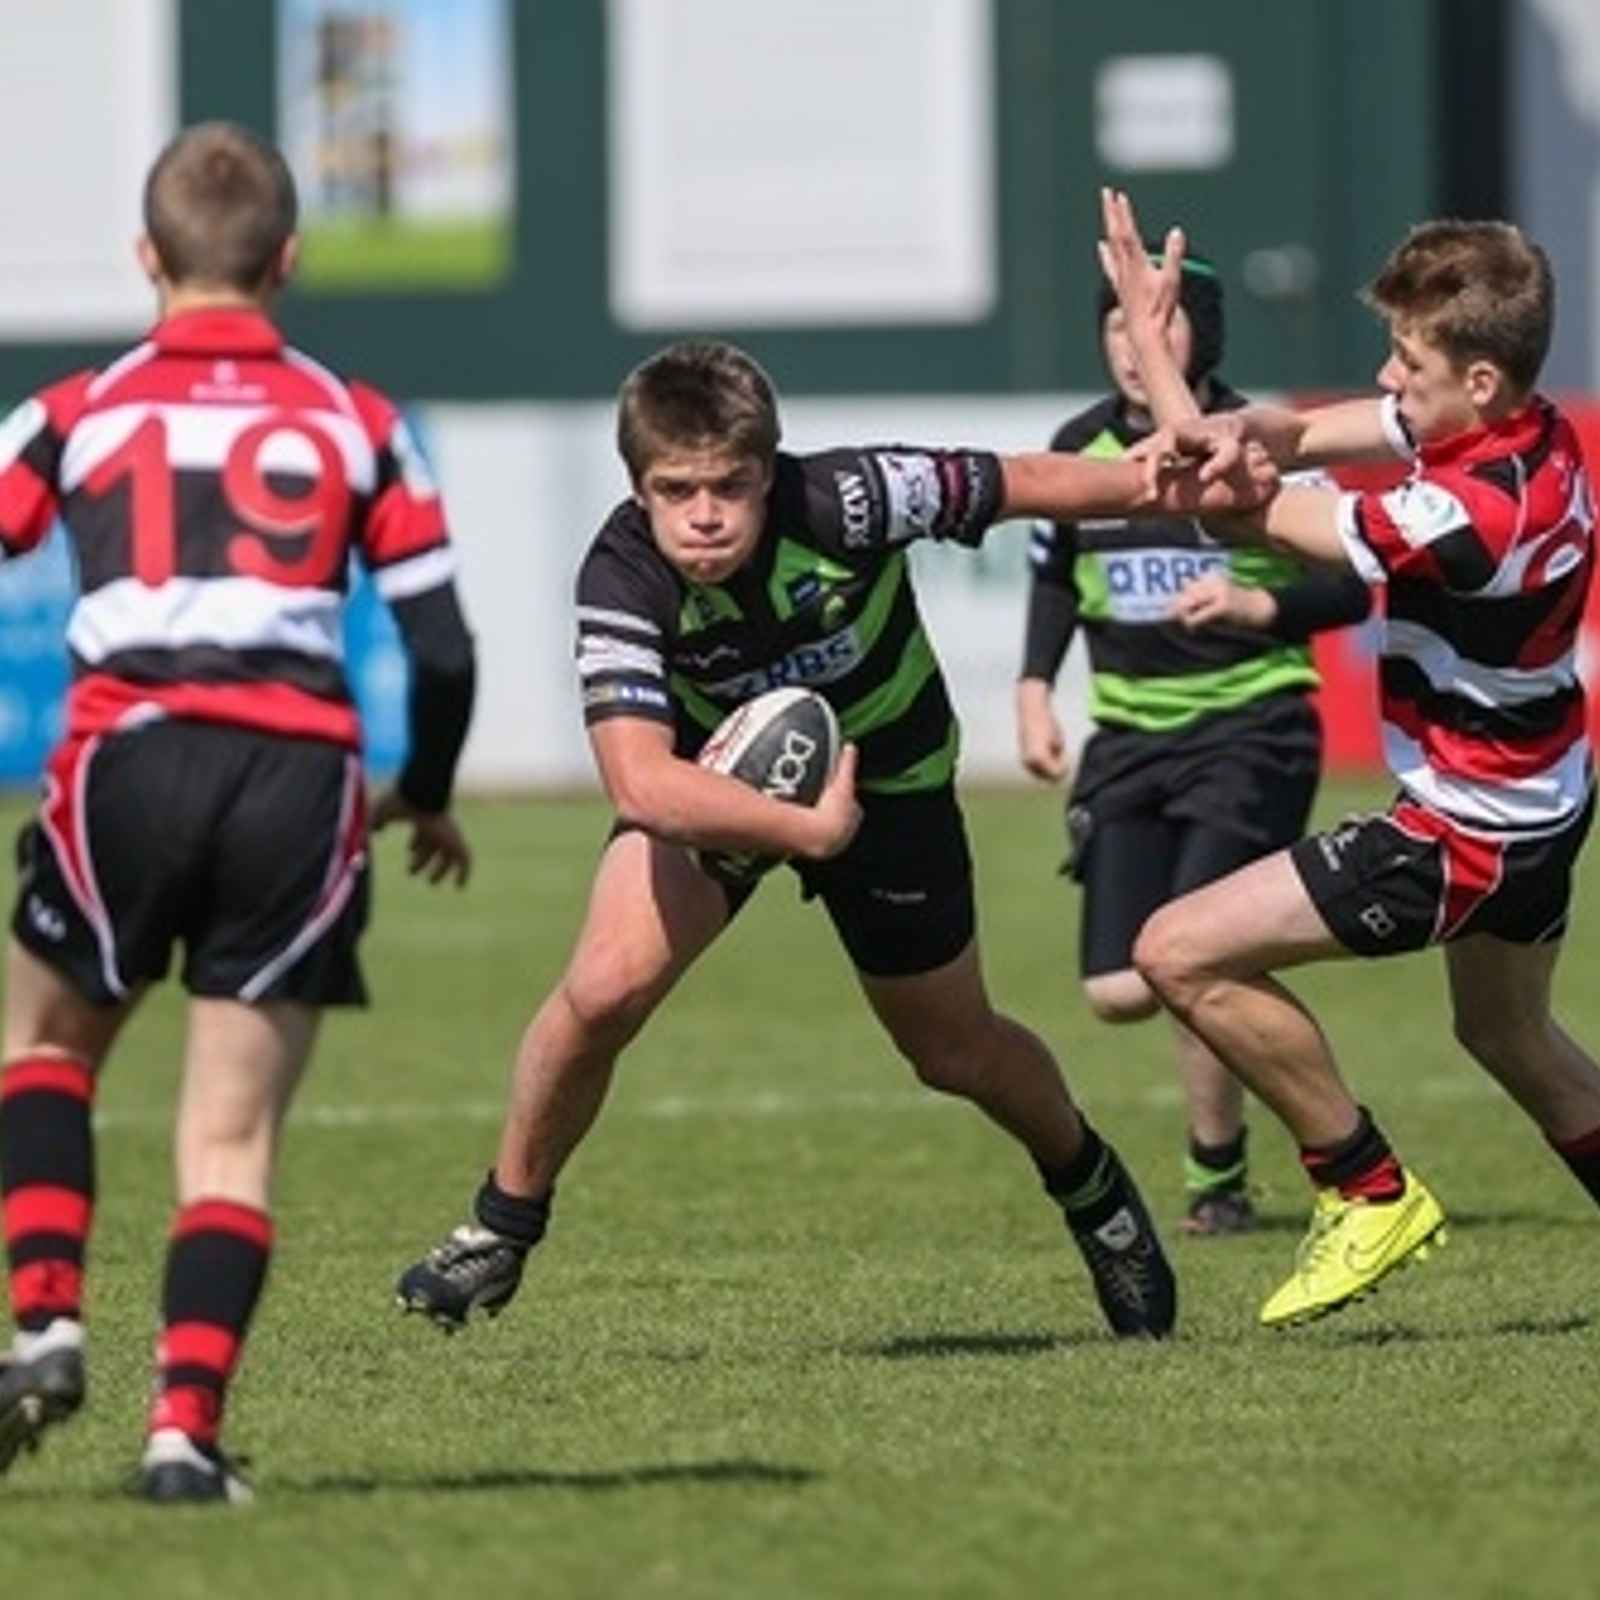 Three U15 players selected for Hampshire